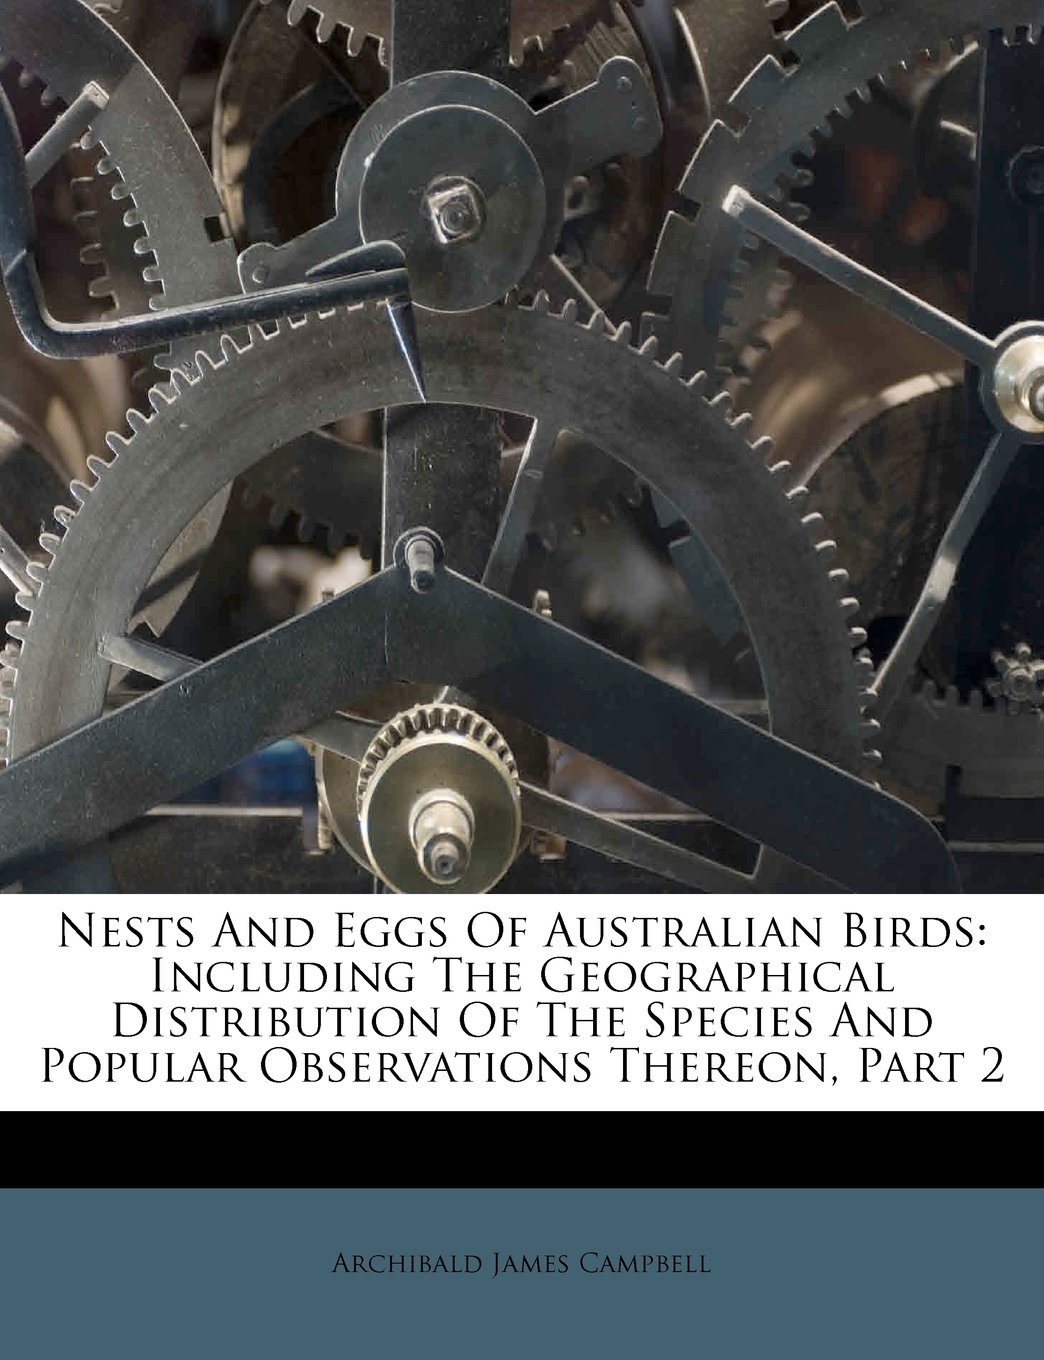 Download Nests And Eggs Of Australian Birds: Including The Geographical Distribution Of The Species And Popular Observations Thereon, Part 2 pdf